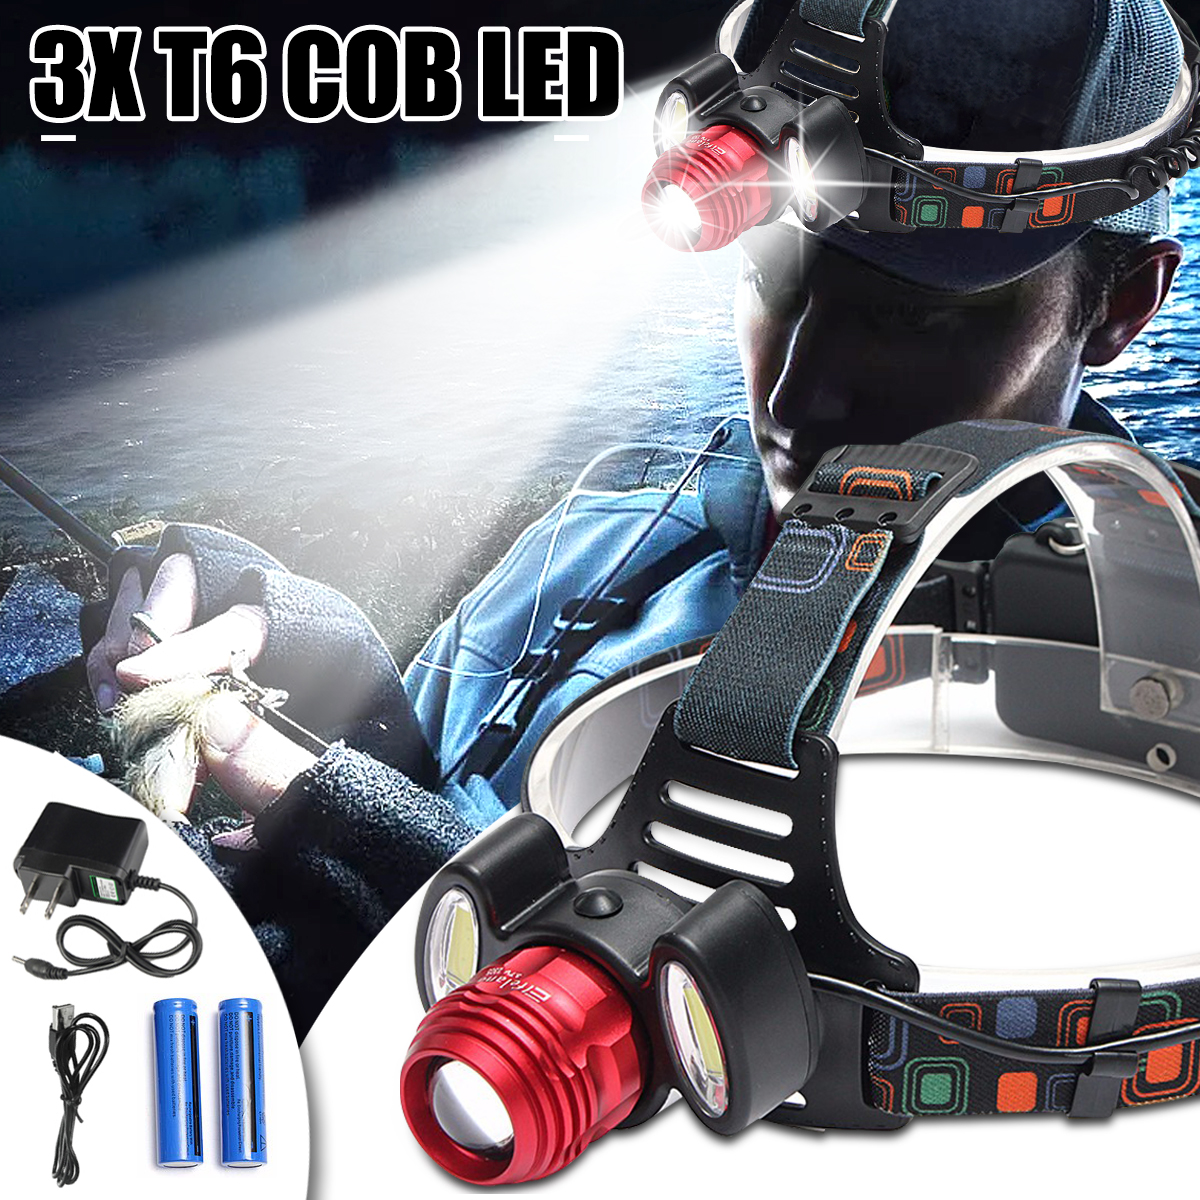 30000lm LED Headlamp 1*T6+2*COB Fishing Headlight Flashlight Torch Head Lamp Light 18650 Rechargeable For Camping Hunting usb rechargeable headlight cob led headlamp 3 modes head torch flashlight for camping use 2 18650 batteries